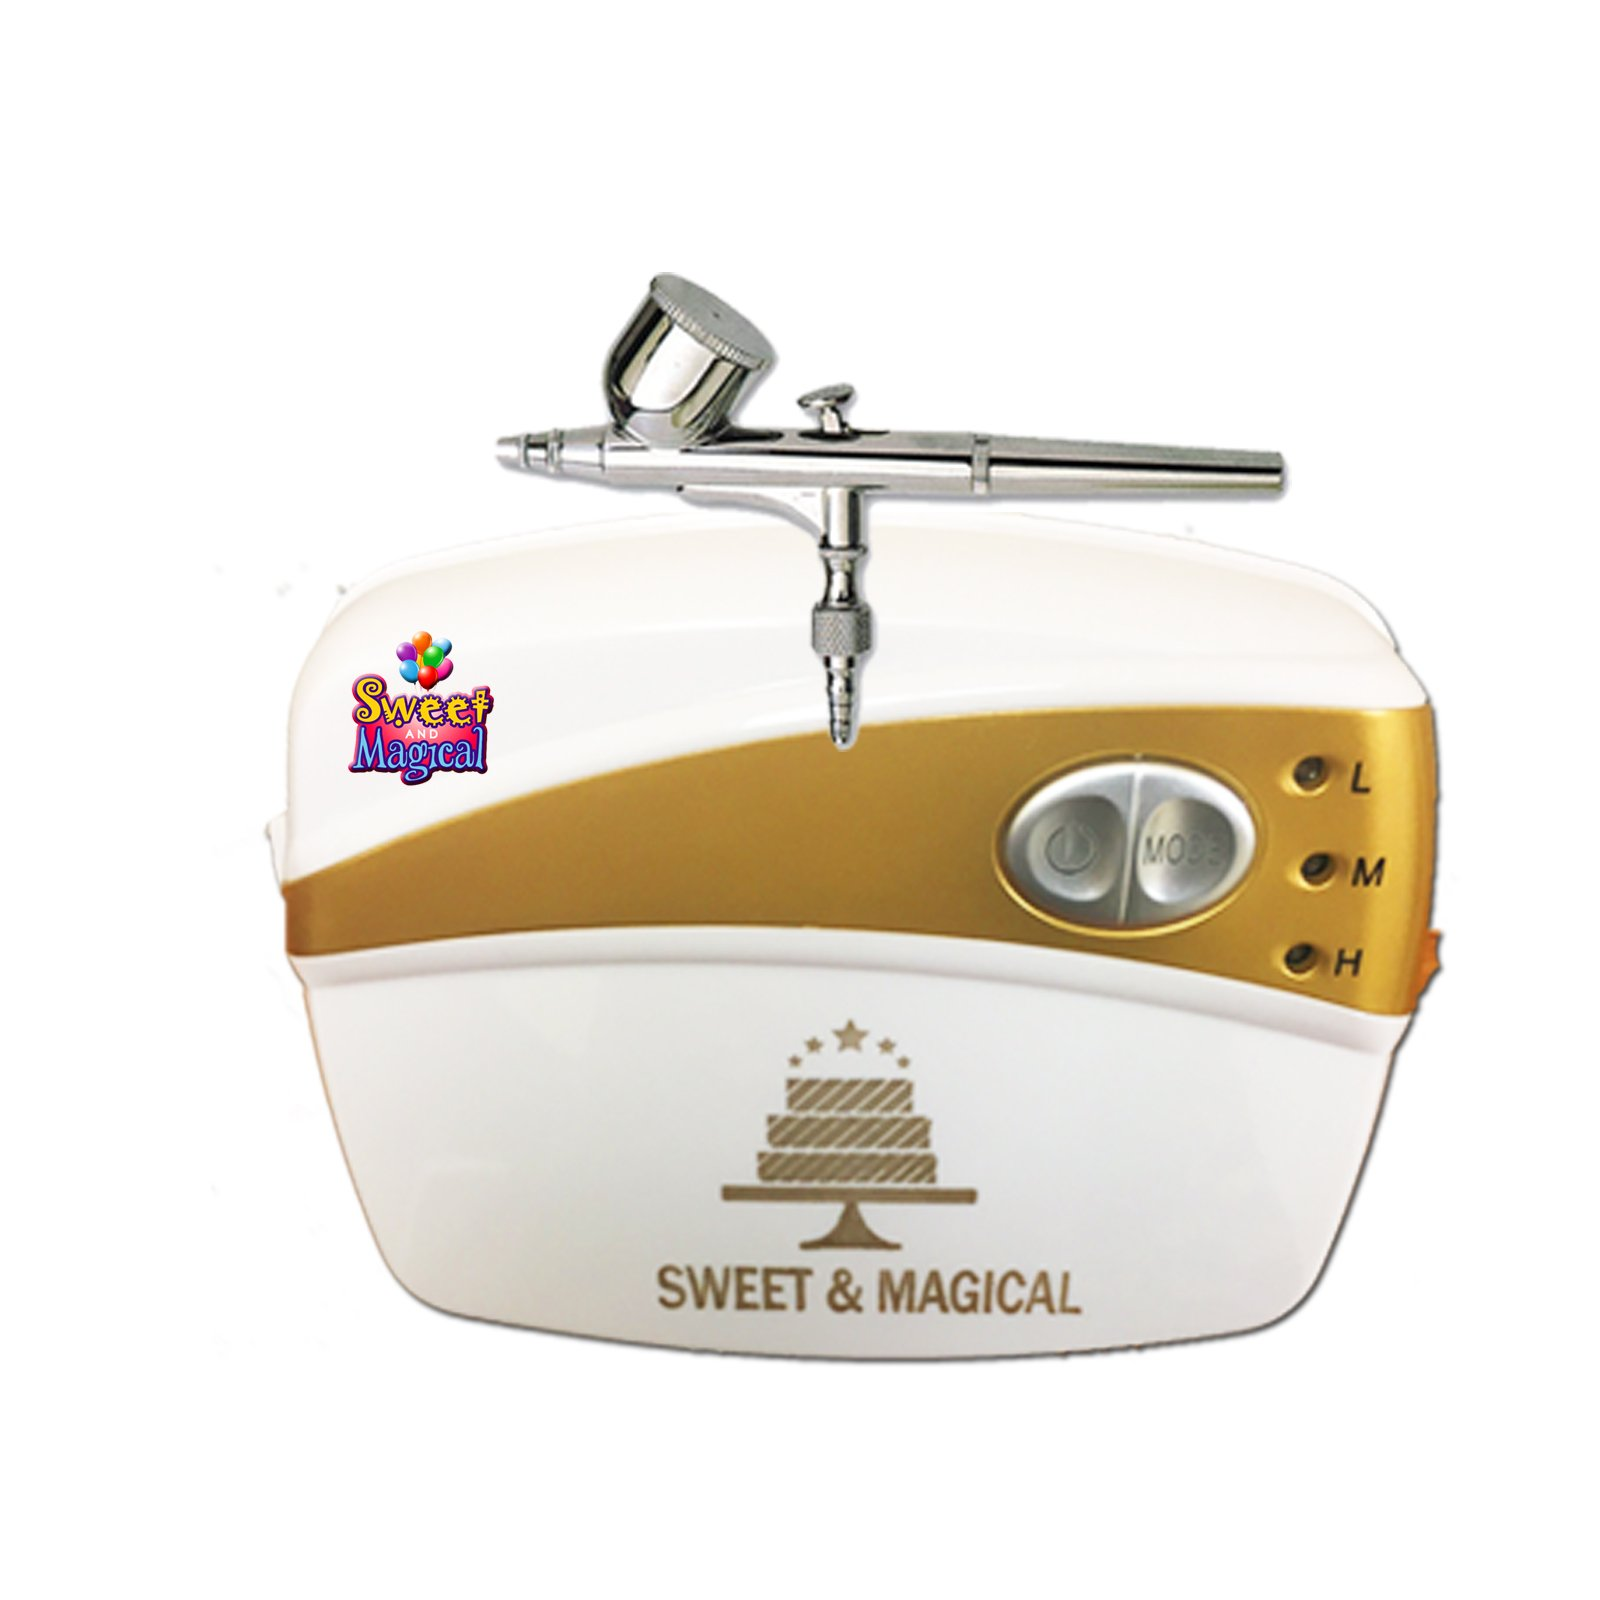 Sweet & Magical Decorating Tools Airbrushing Kit,white by SWEET AND MAGICAL